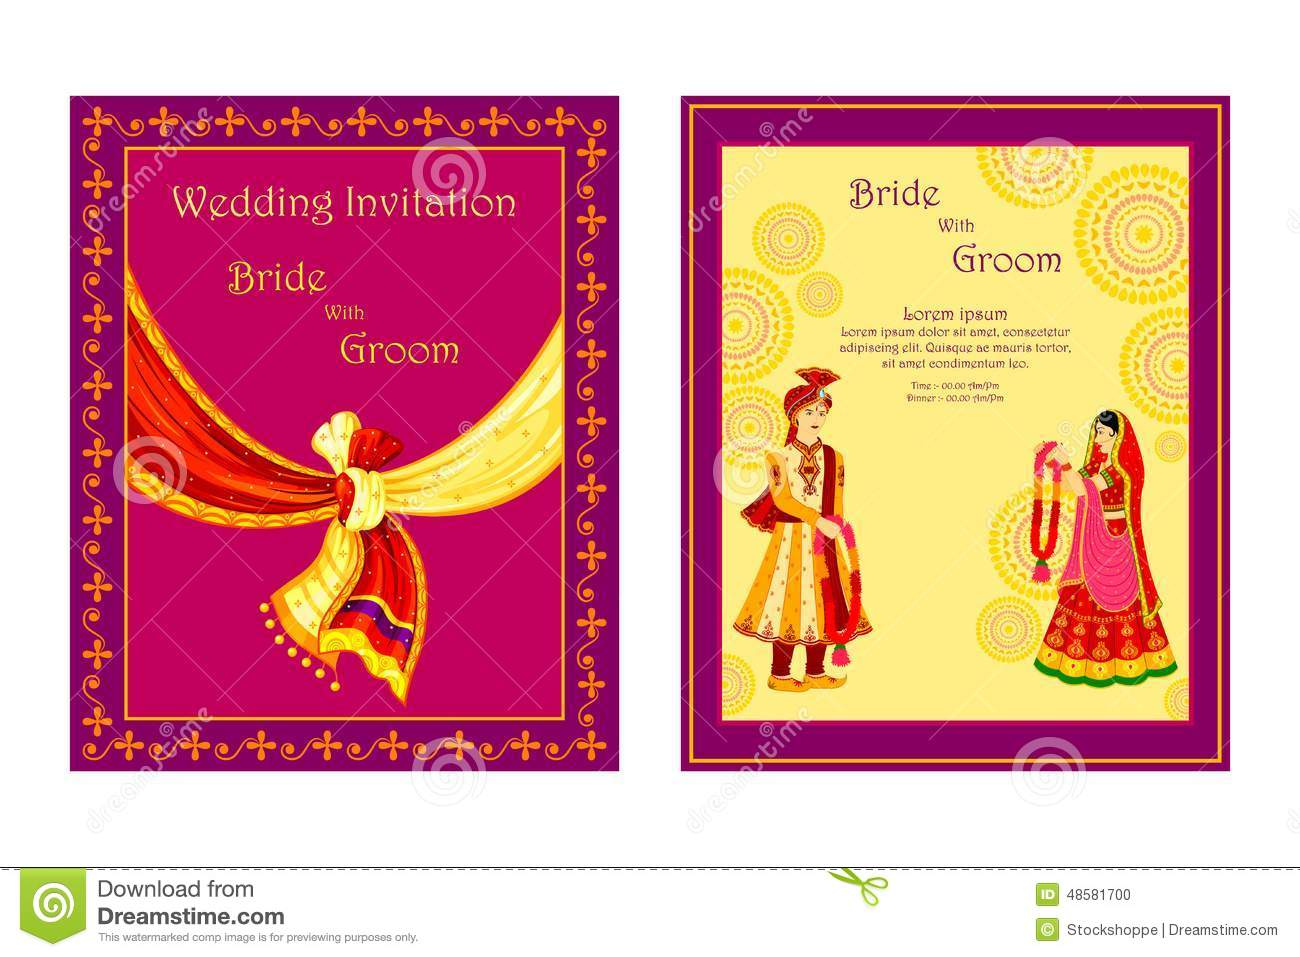 Punjabi Couple Wallpaper With Quotes Indian Wedding Invitation Card Template Editable Matik For